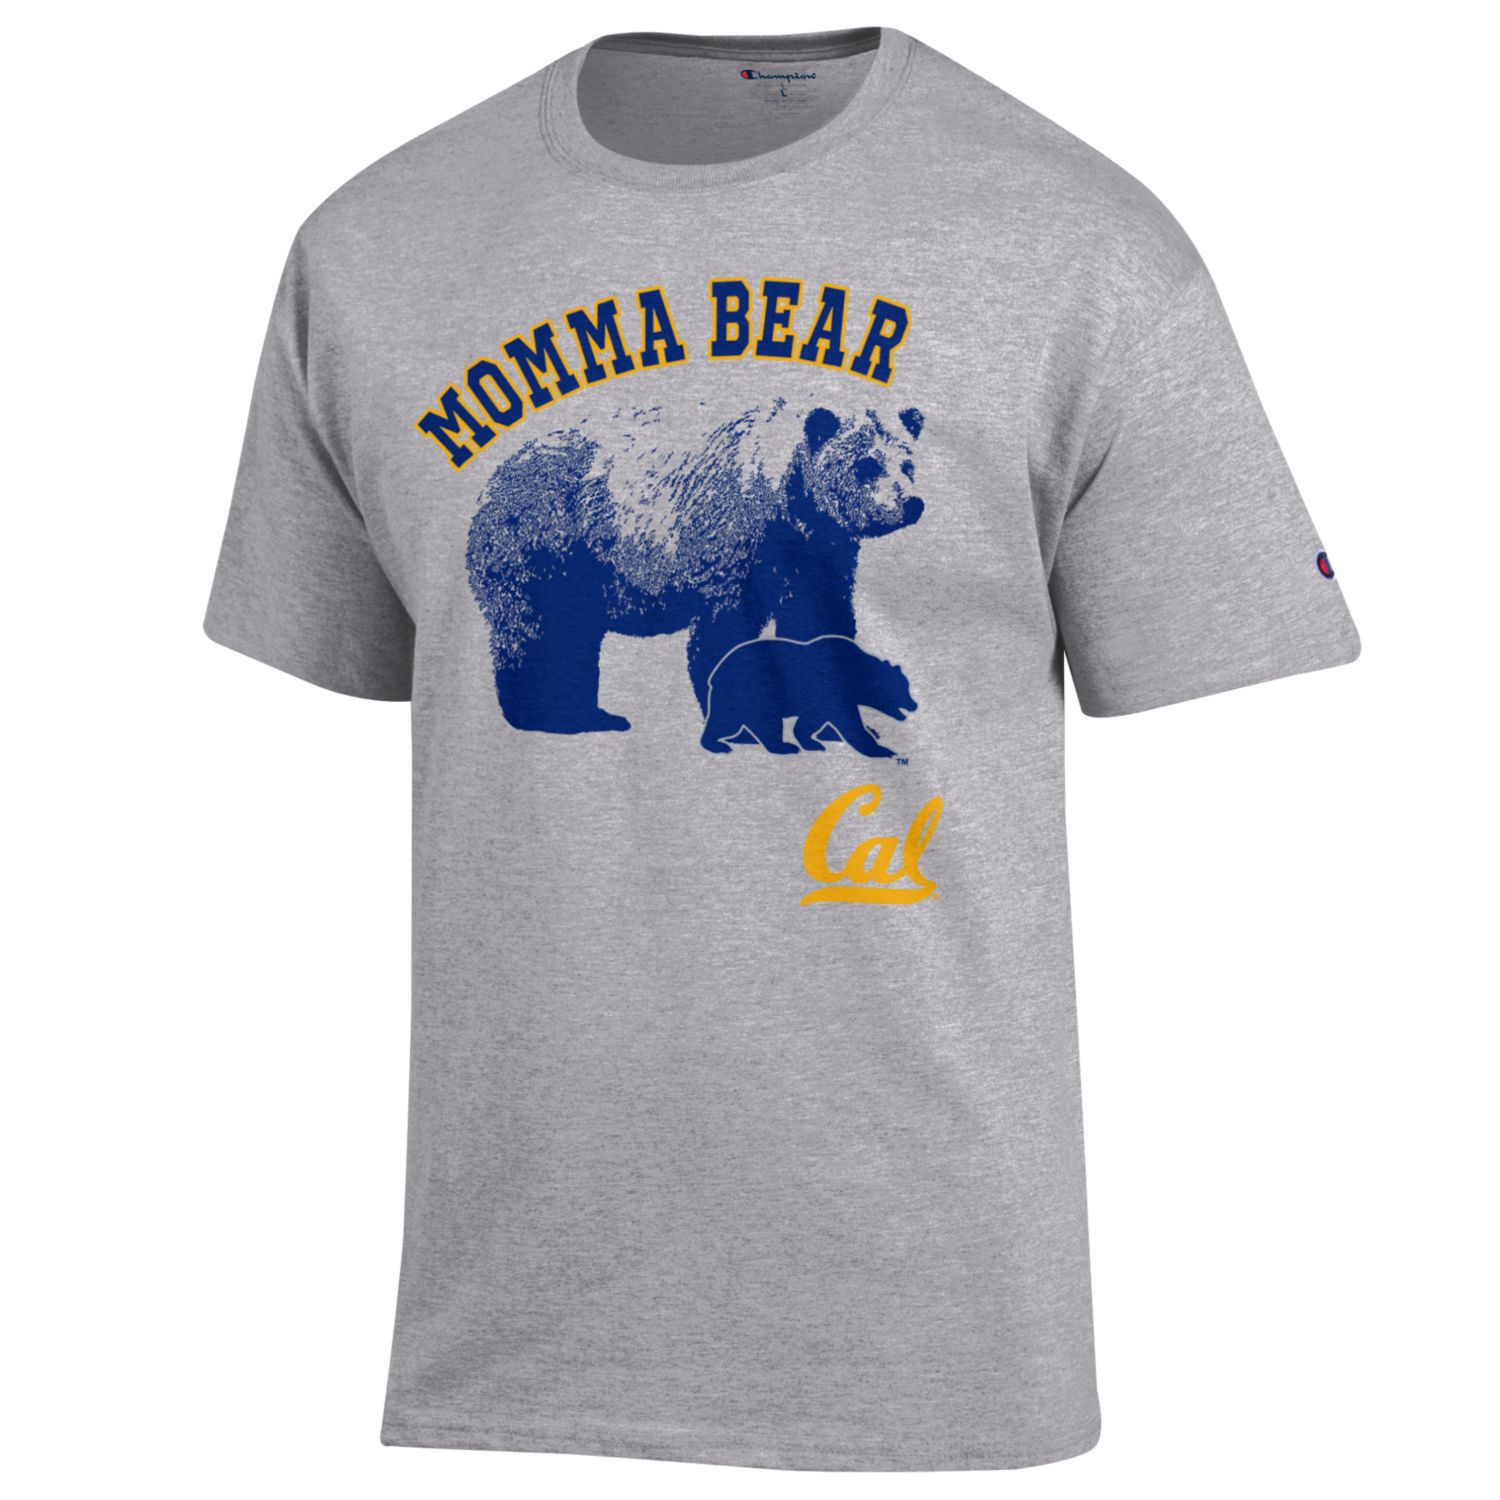 Champion Momma Bear Tee